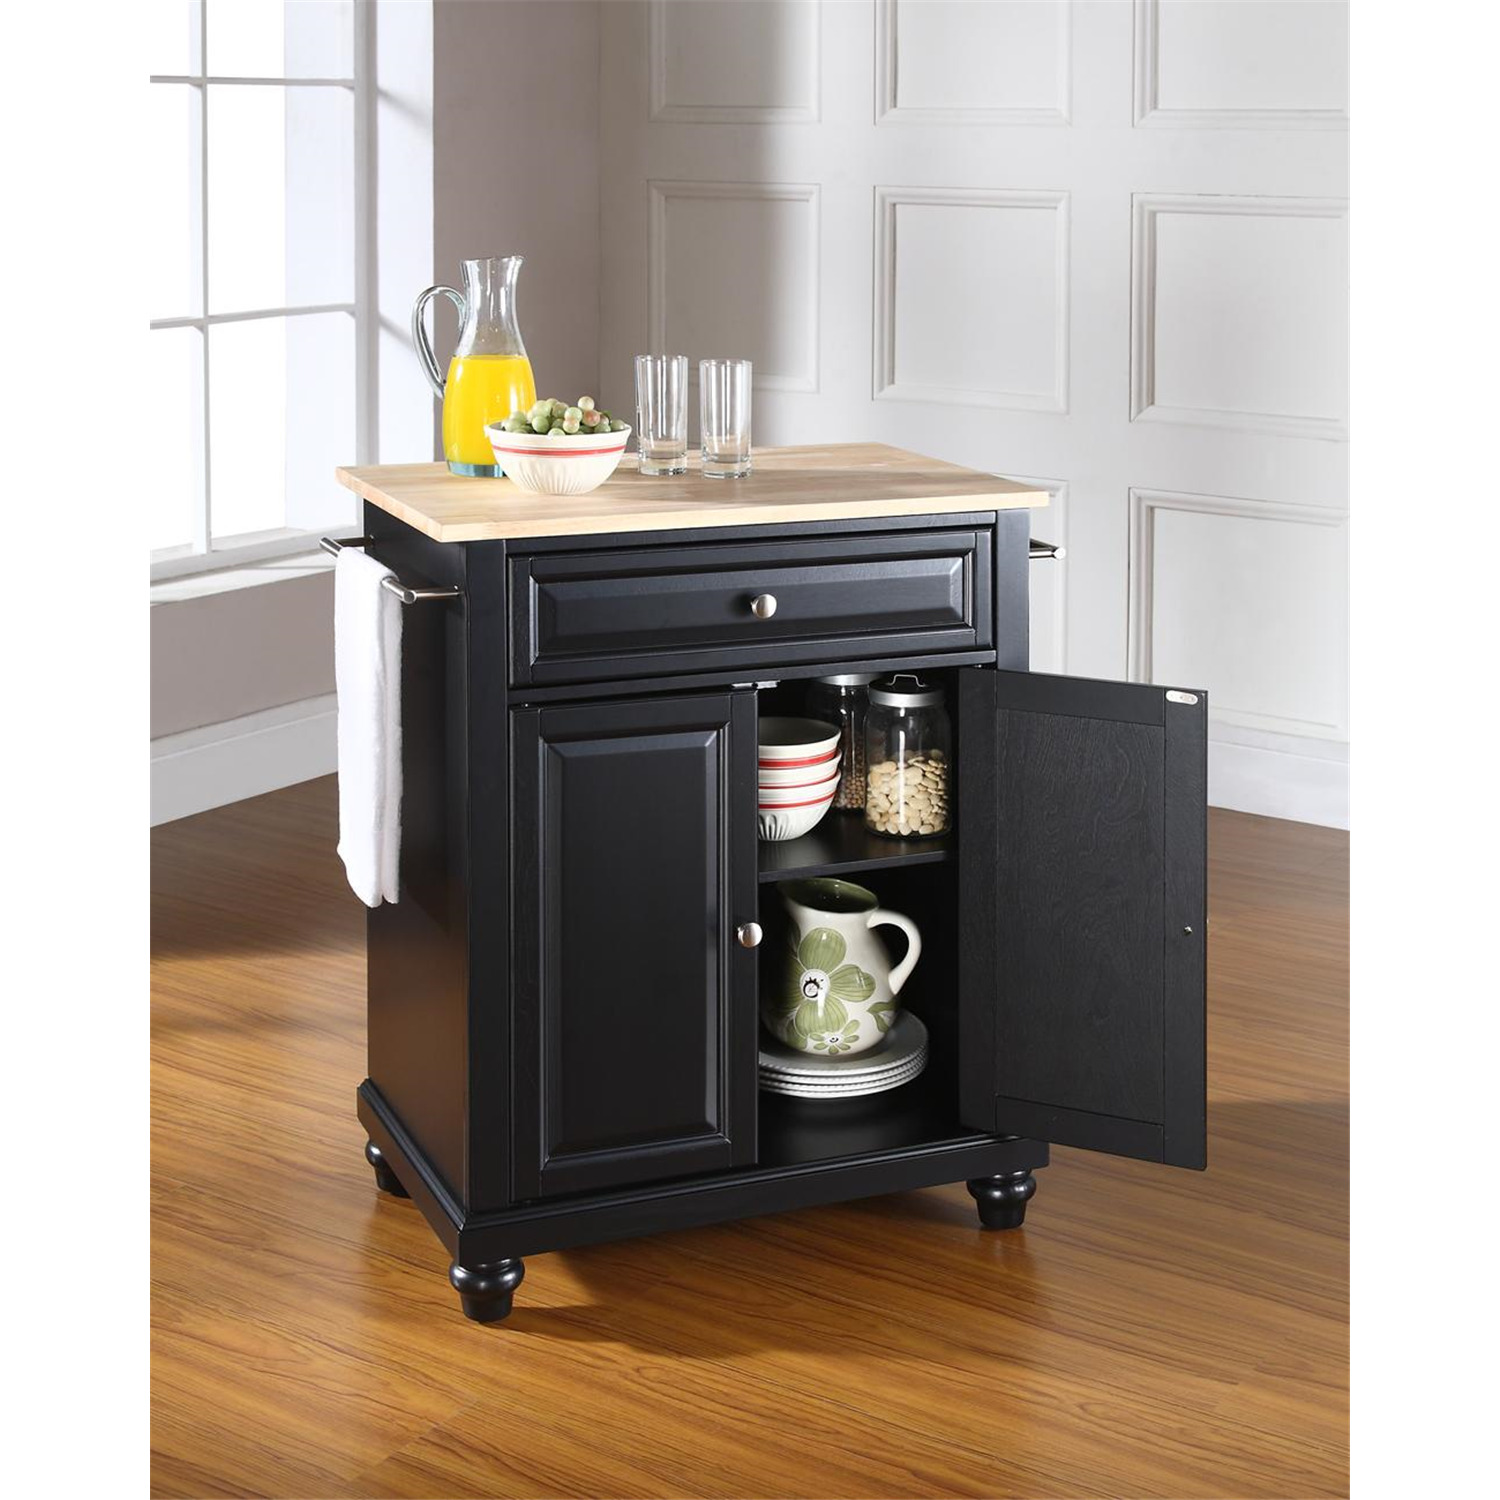 Portable Kitchen Submited Images Pic2Fly